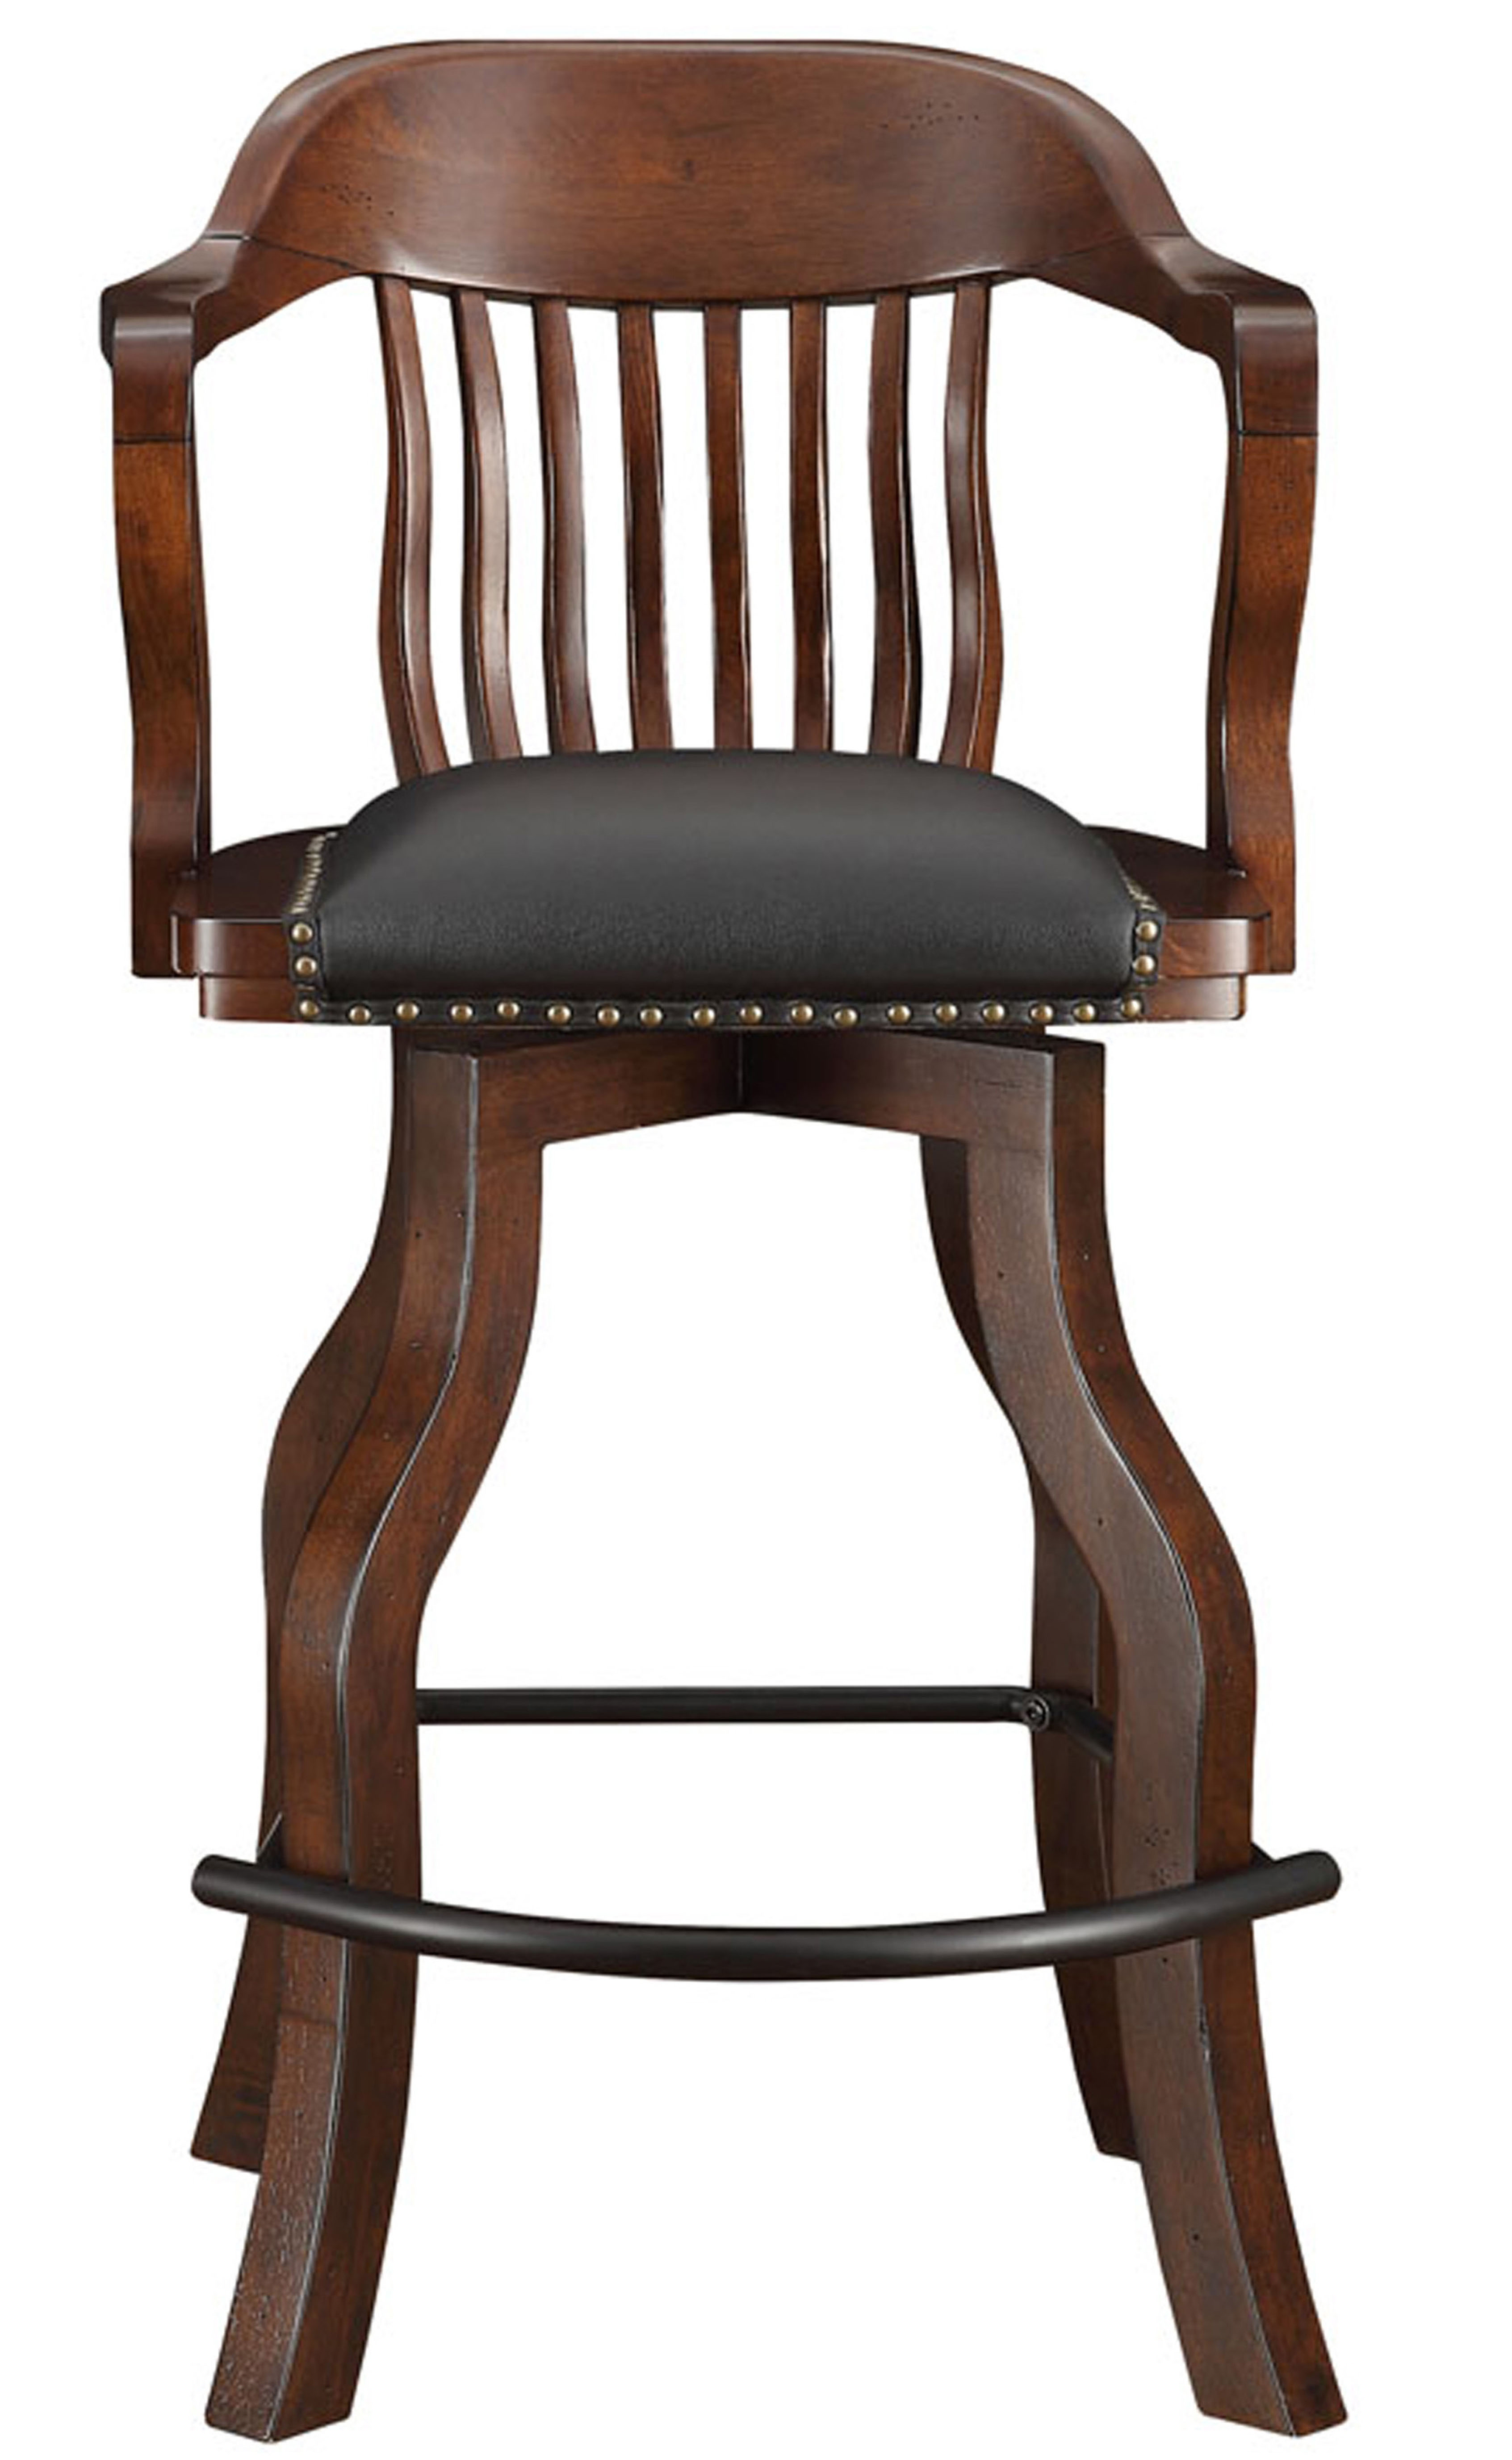 ECI Olde Town 30quot Swivel Bar Stool with Arms eBay : fullview1exp from ebay.com size 287 x 500 jpeg 44kB